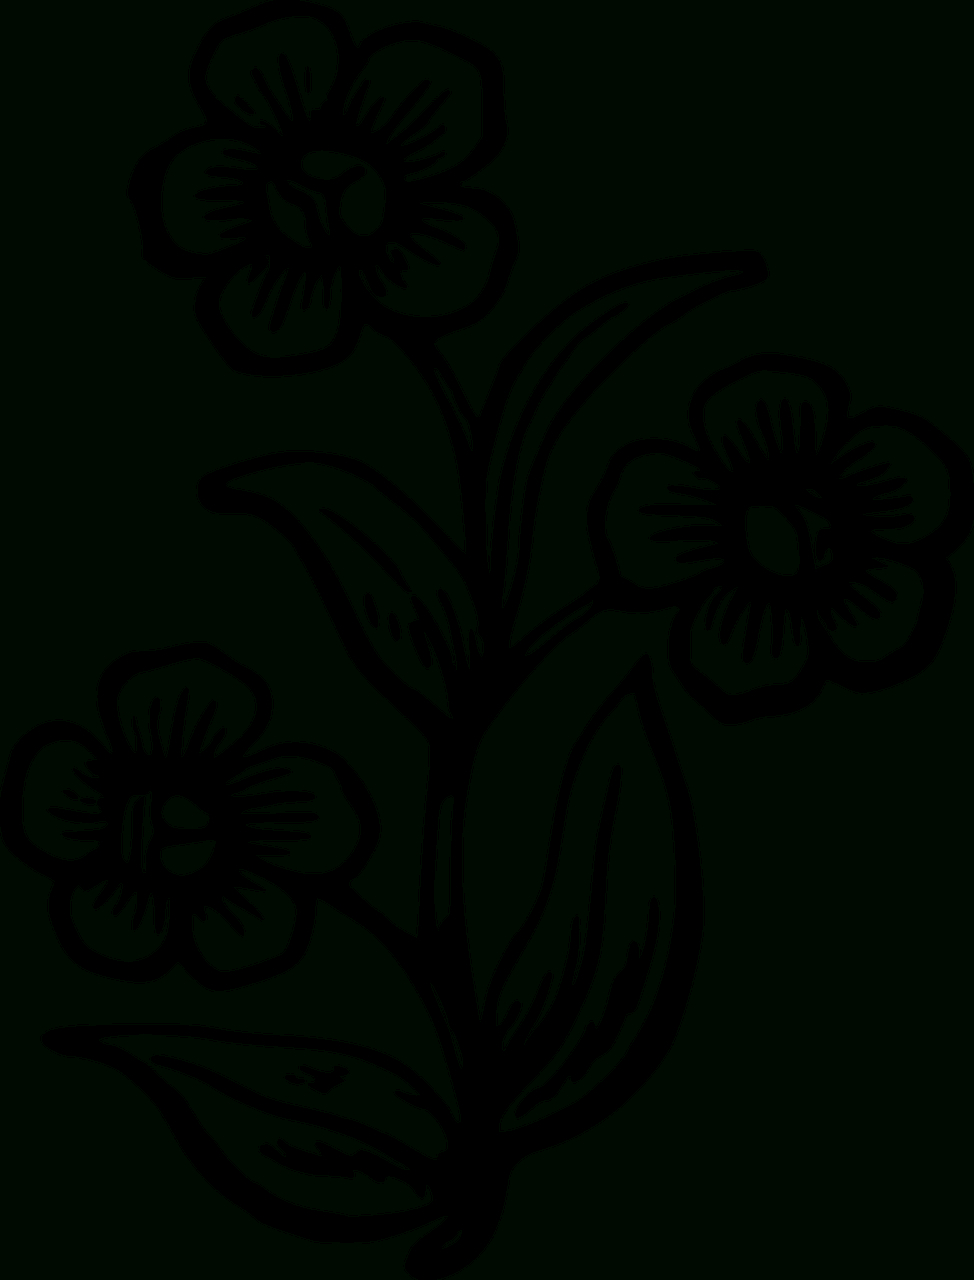 Free Printable Photos Of Flowers - Rr Collections - Free Printable Flower Stencils